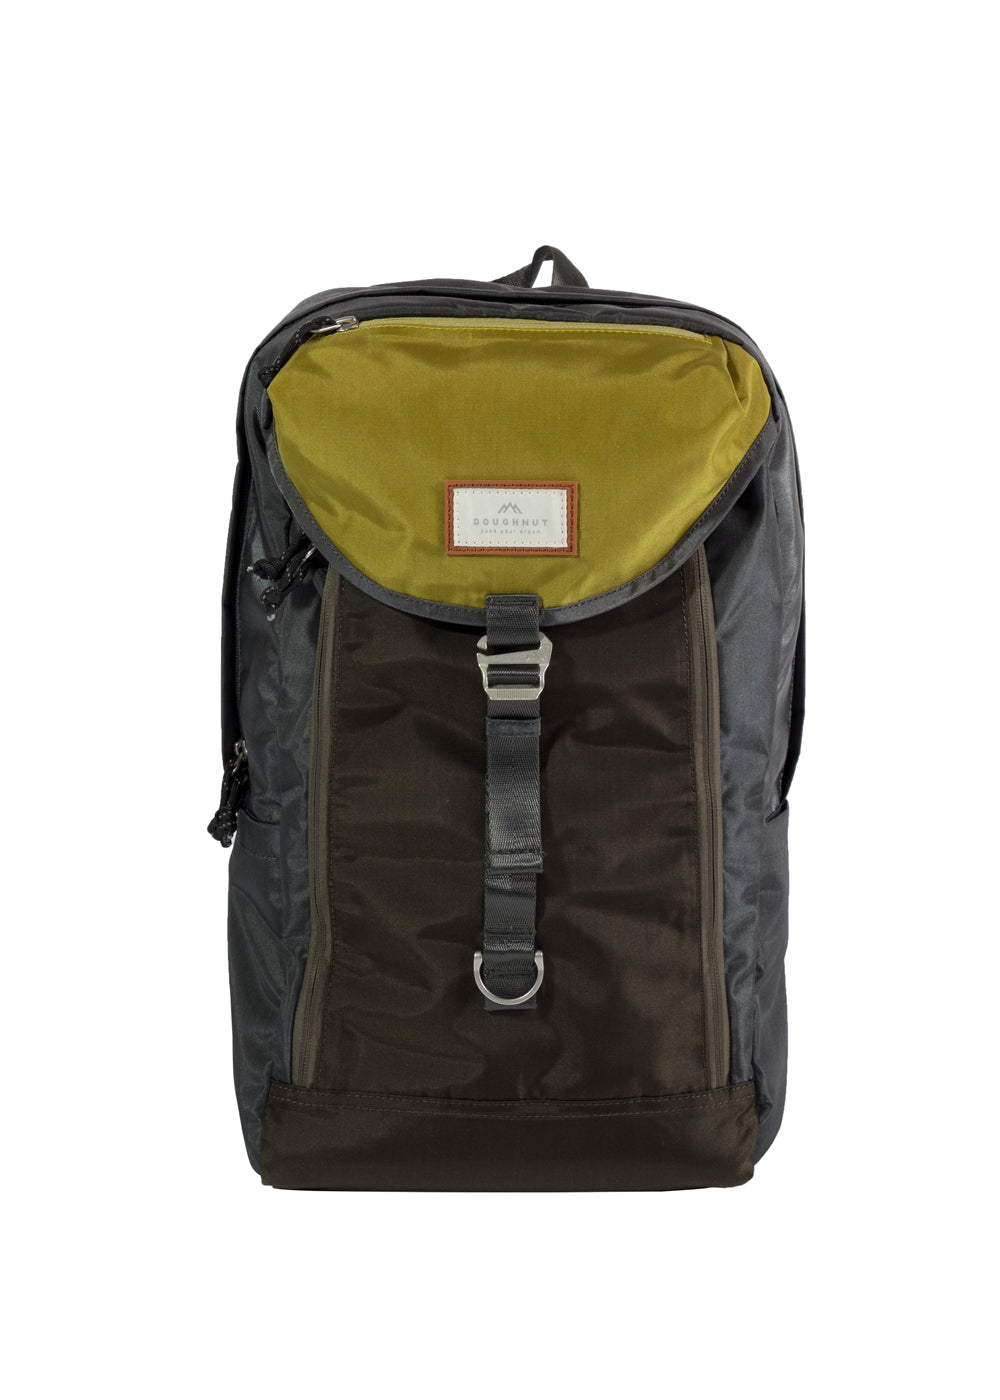 MORRIS GLOSSY BLOCKING SERIES Charcoal x Olive